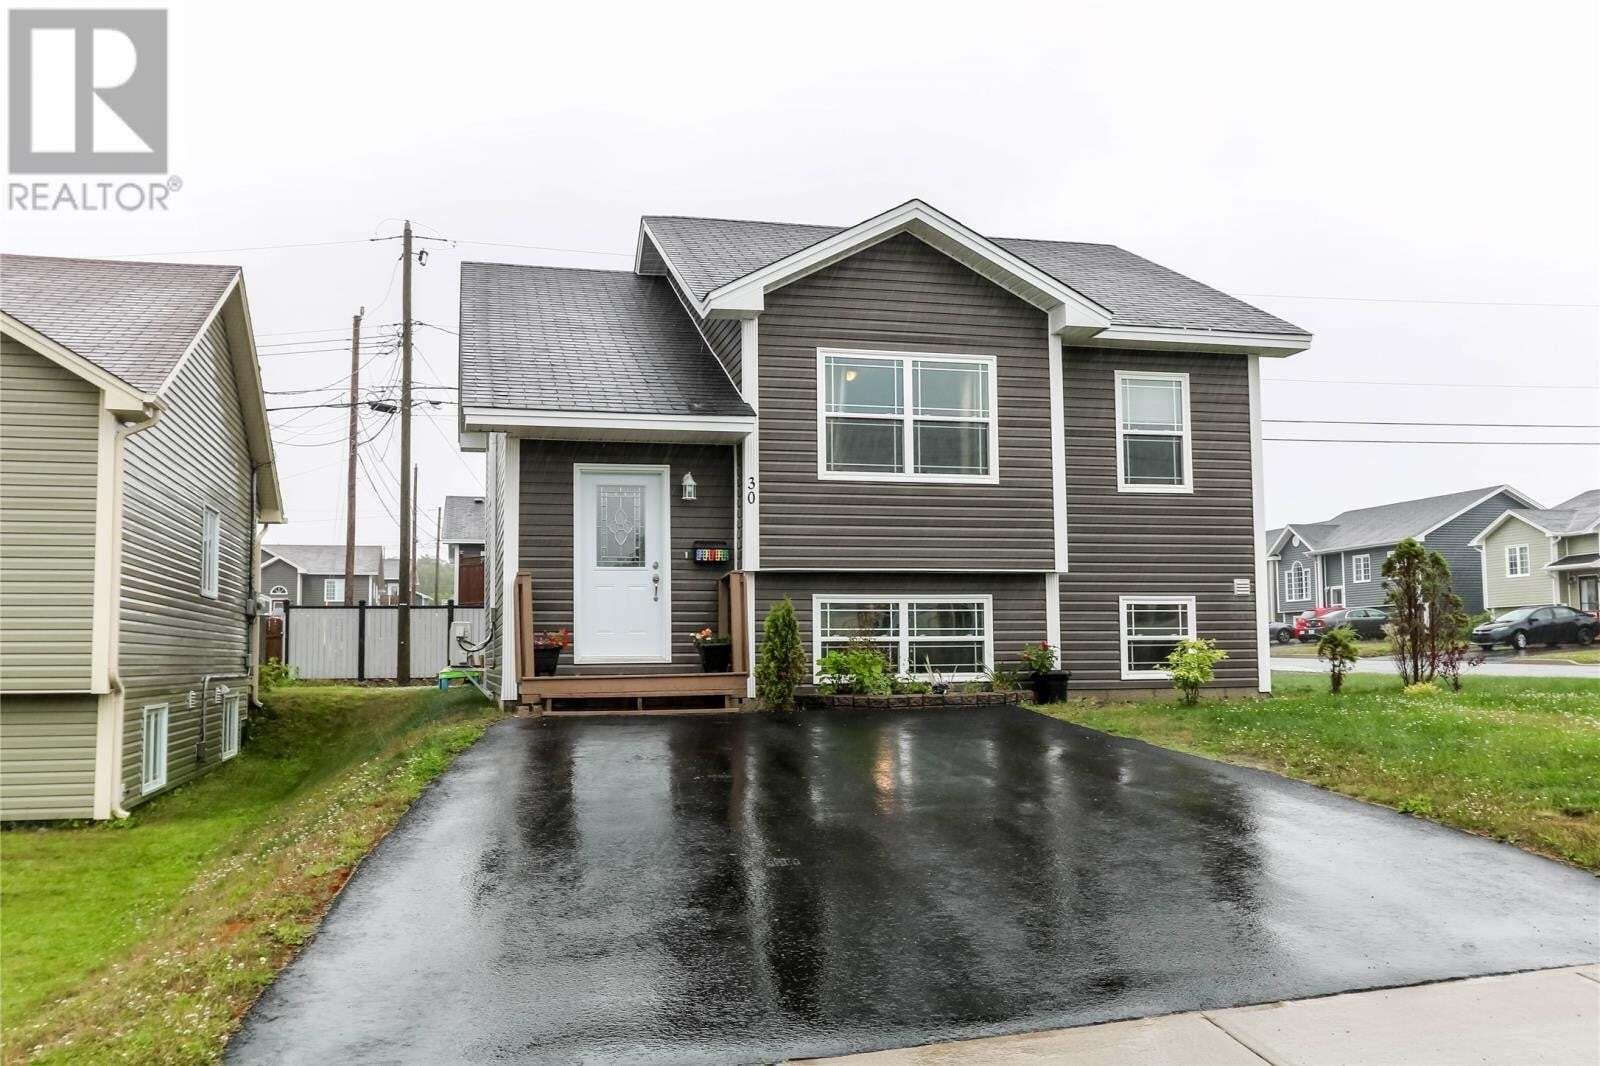 House for sale at 30 Comerfords Rd Conception Bay South Newfoundland - MLS: 1221568